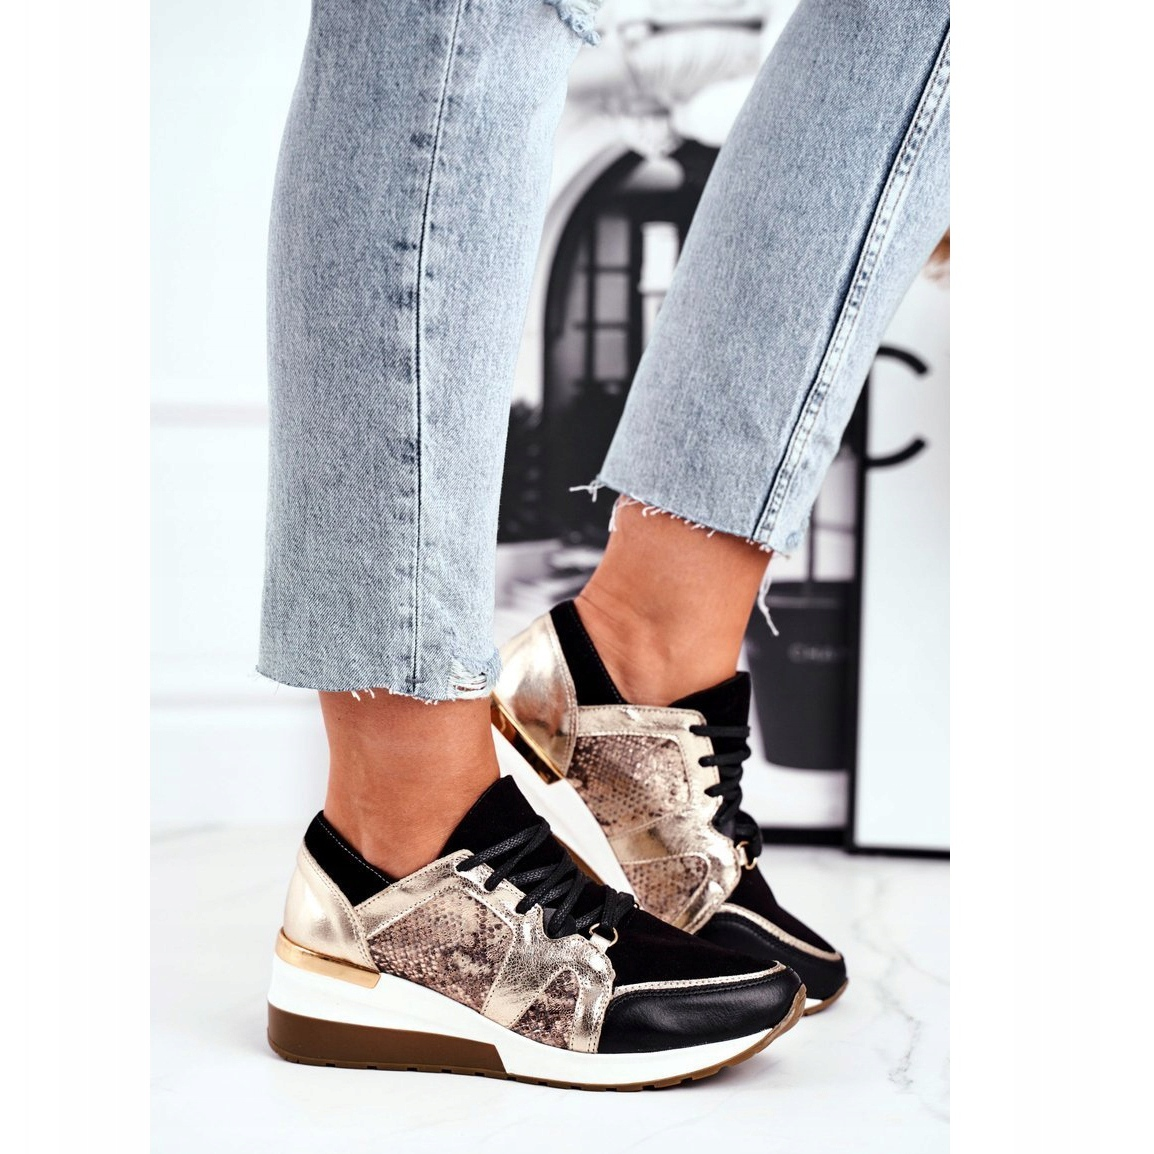 Nicole Gold Sneakers Women's Natural